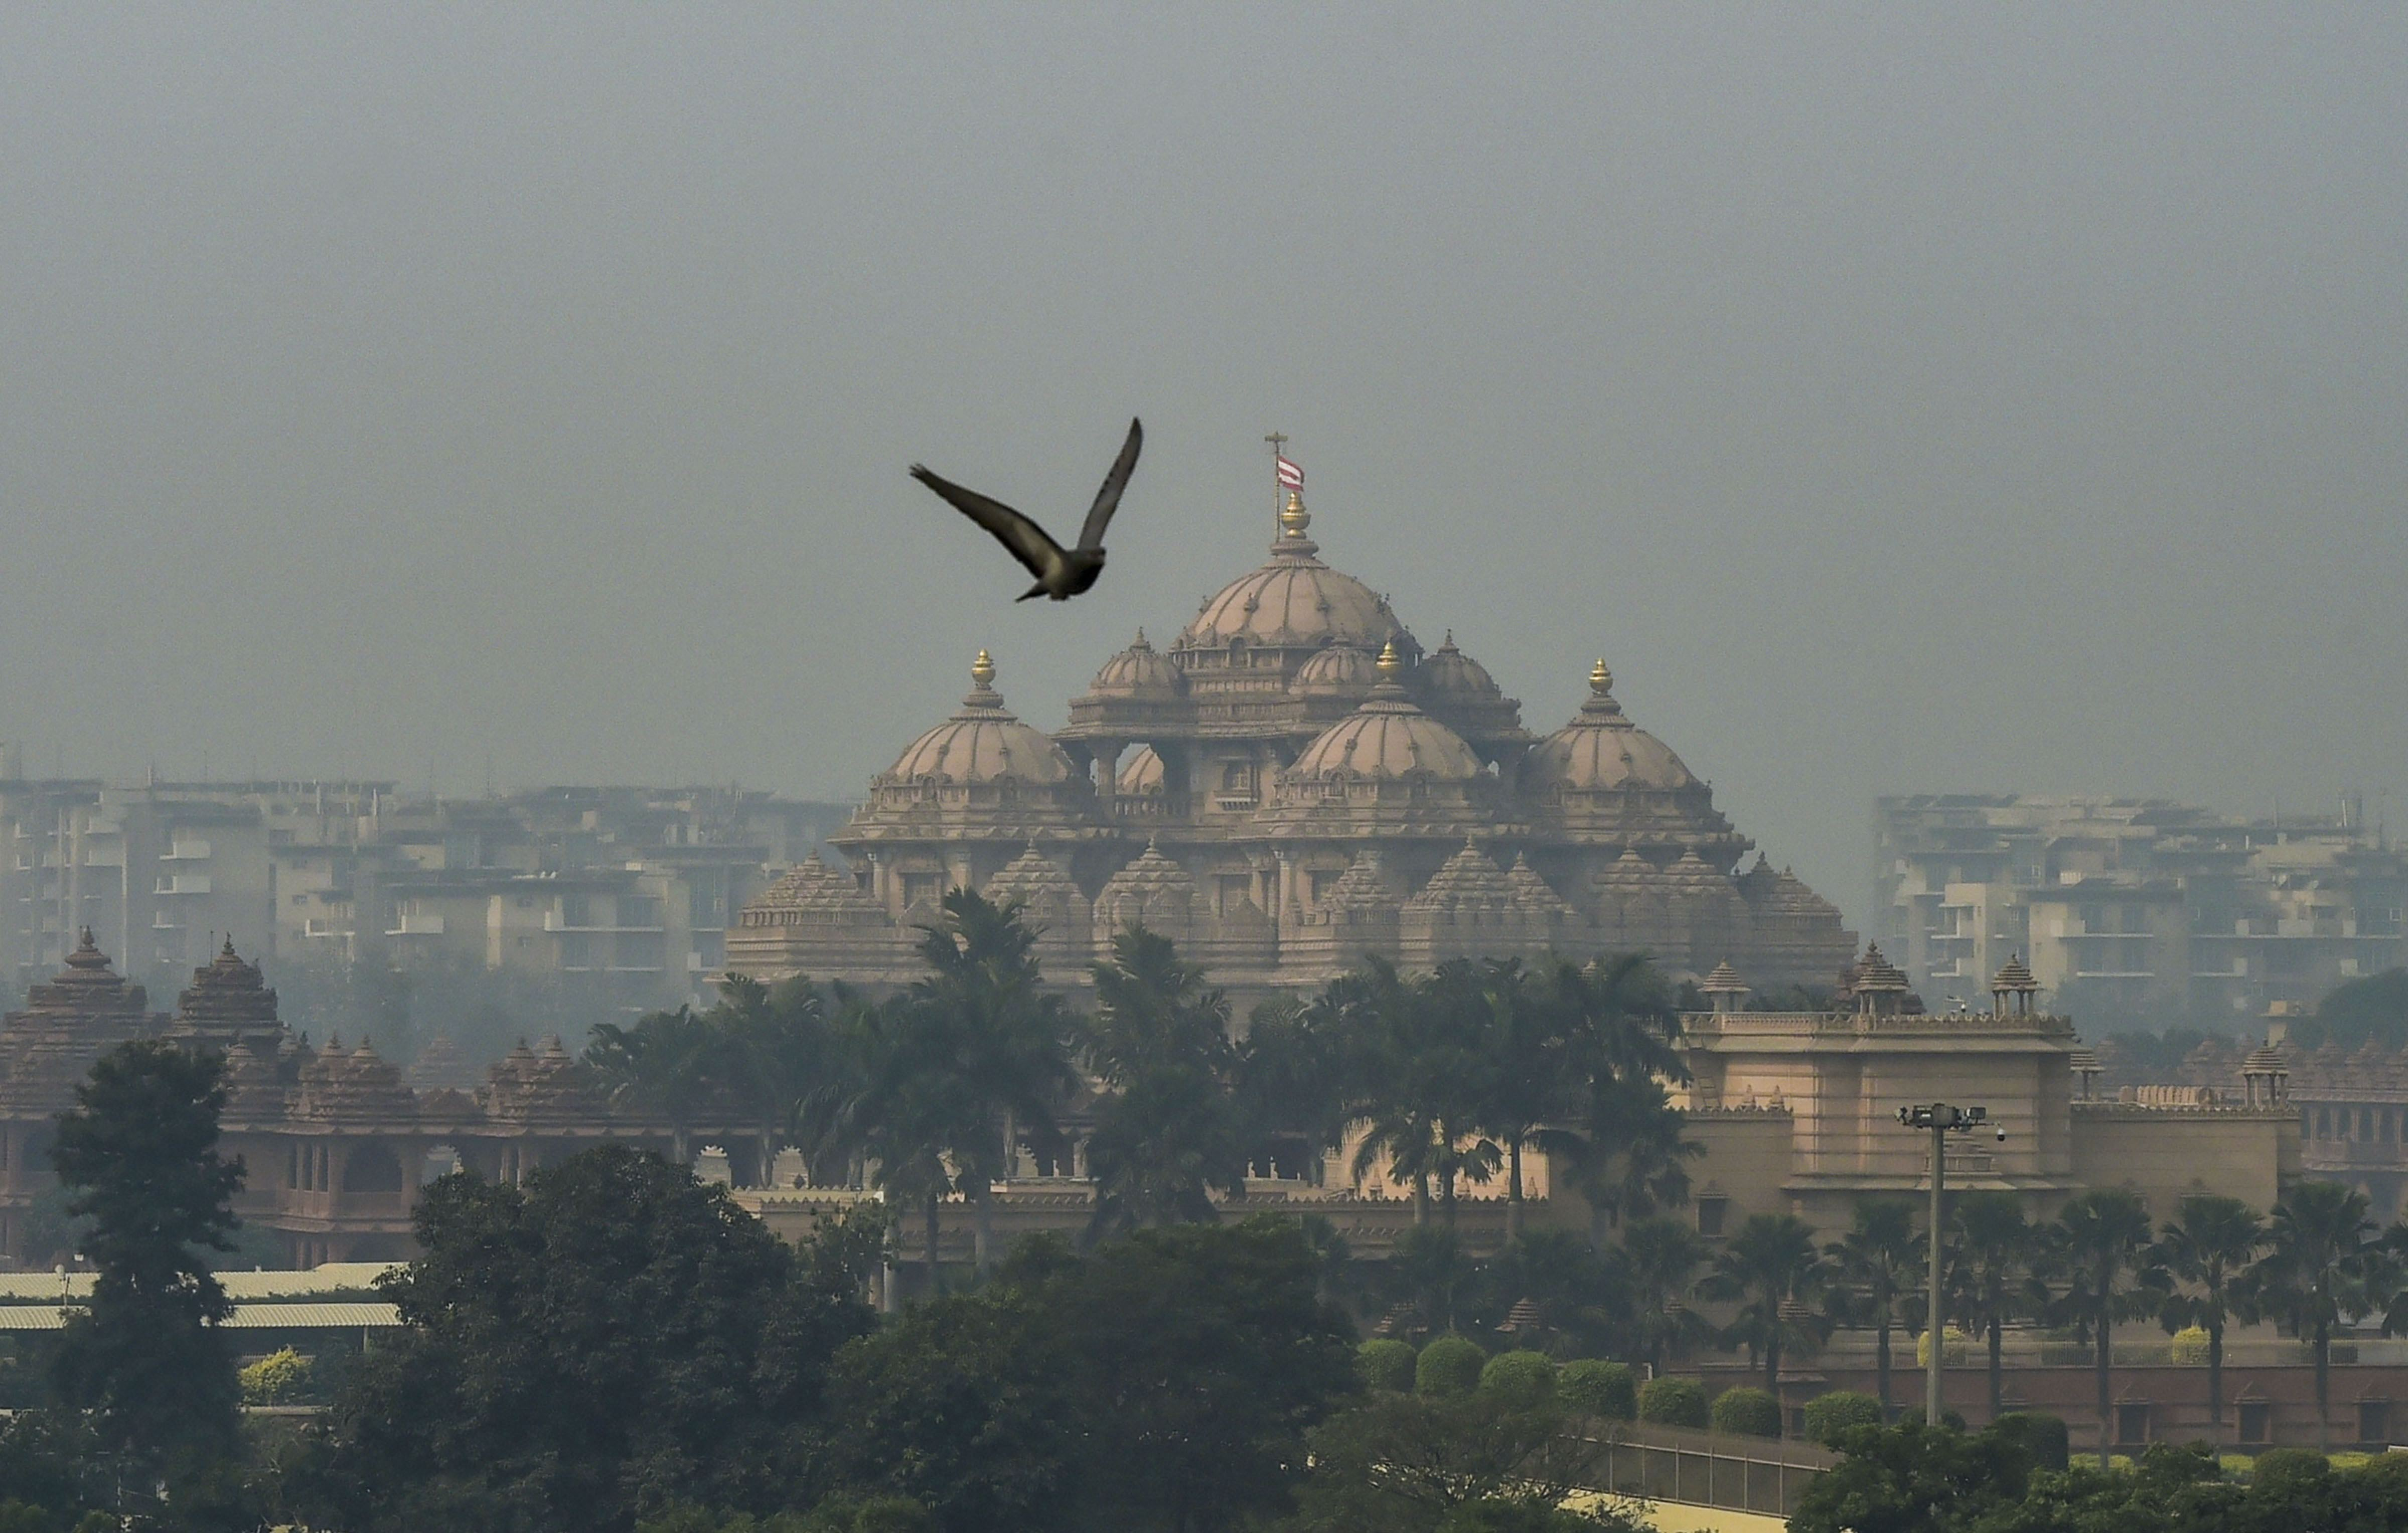 A view of Akshardham temple shrouded in haze post-Diwali celebrations, in New Delhi, Monday, October 28, 2019.